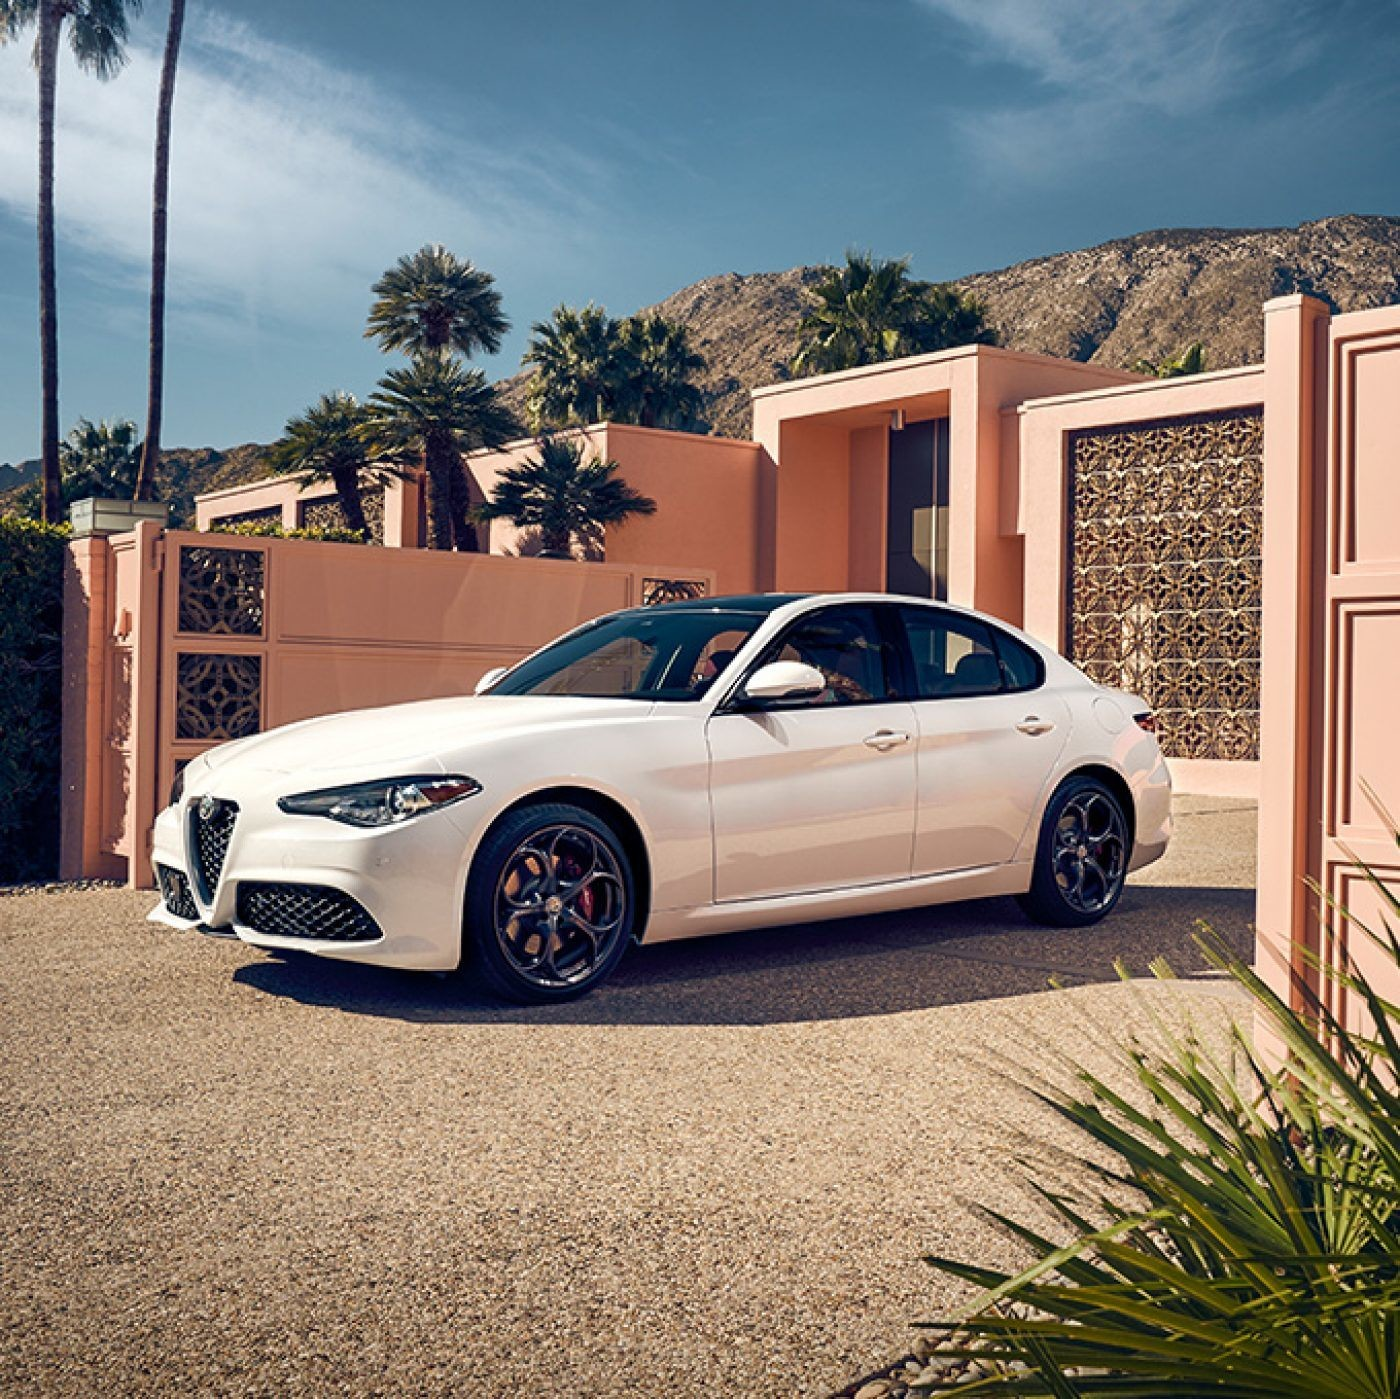 Side view of the white 2019 Alfa Romeo Giulia pulling out of a driveway